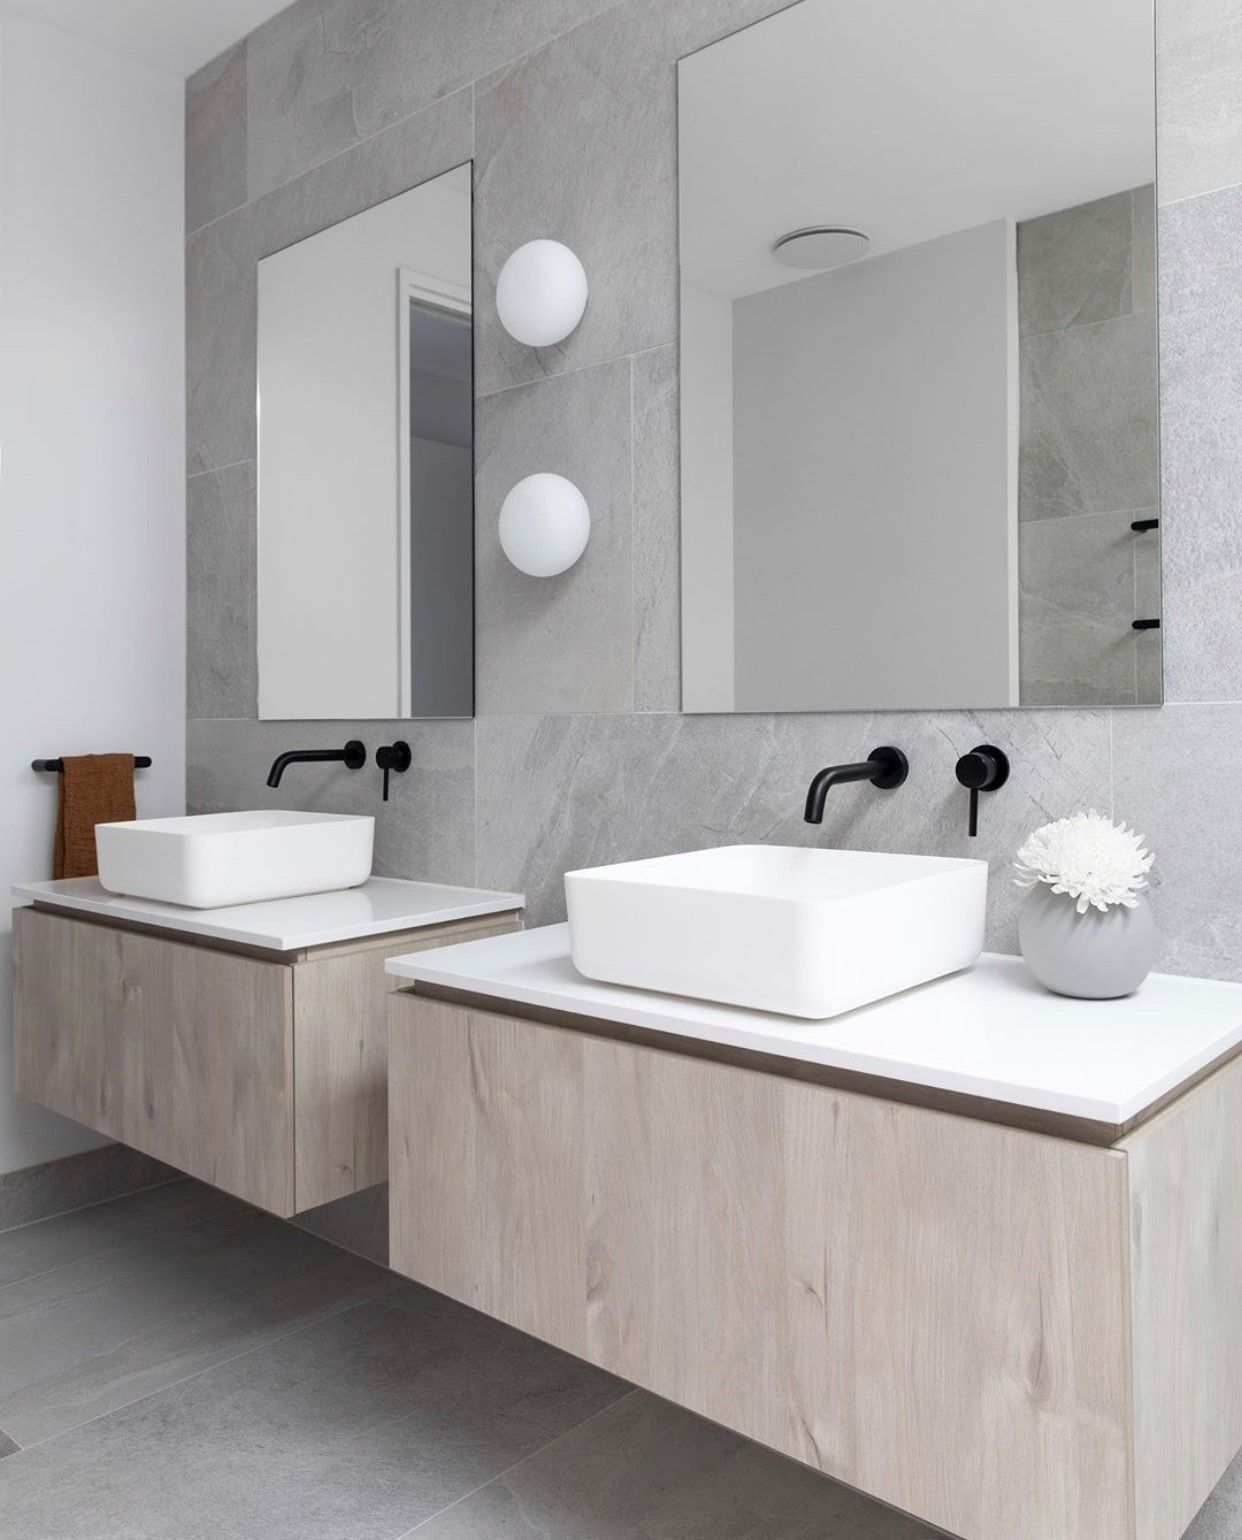 5 tips to creating a scandi style home zephyr in on 81 Bathroom Design And Tips For Designing Your Own Bathroom id=15343